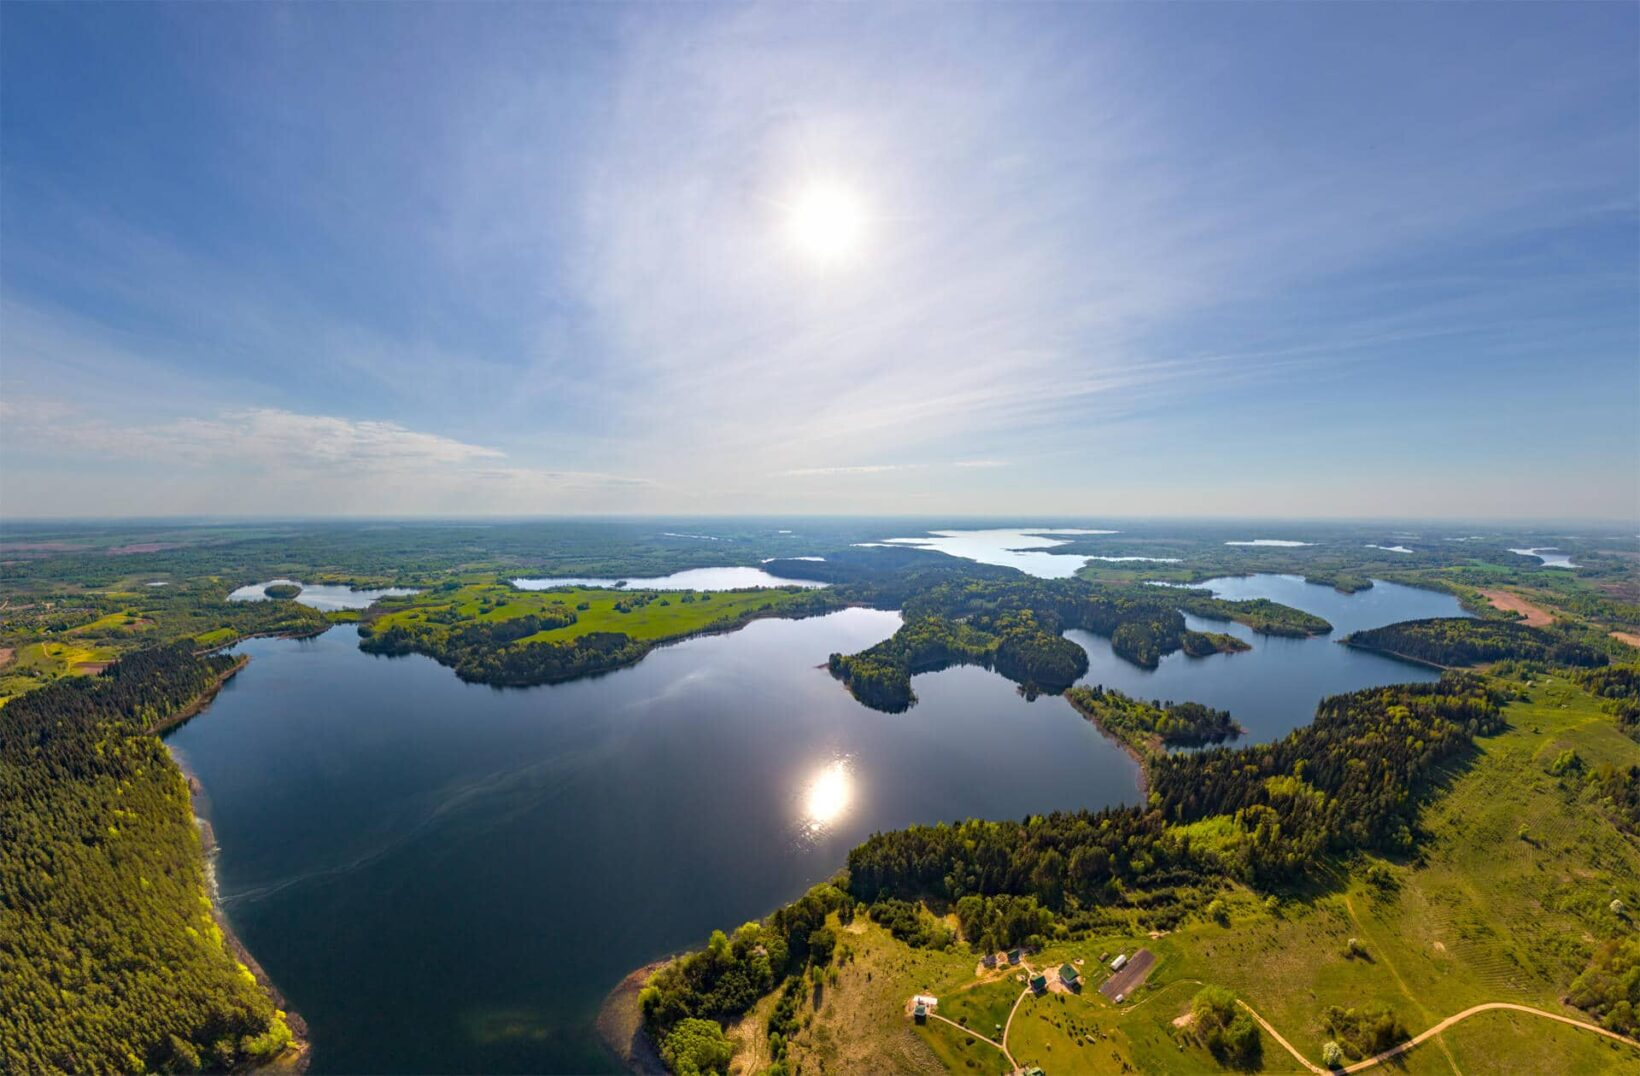 forest lakes in Belarus, things to know before visiting Belarus